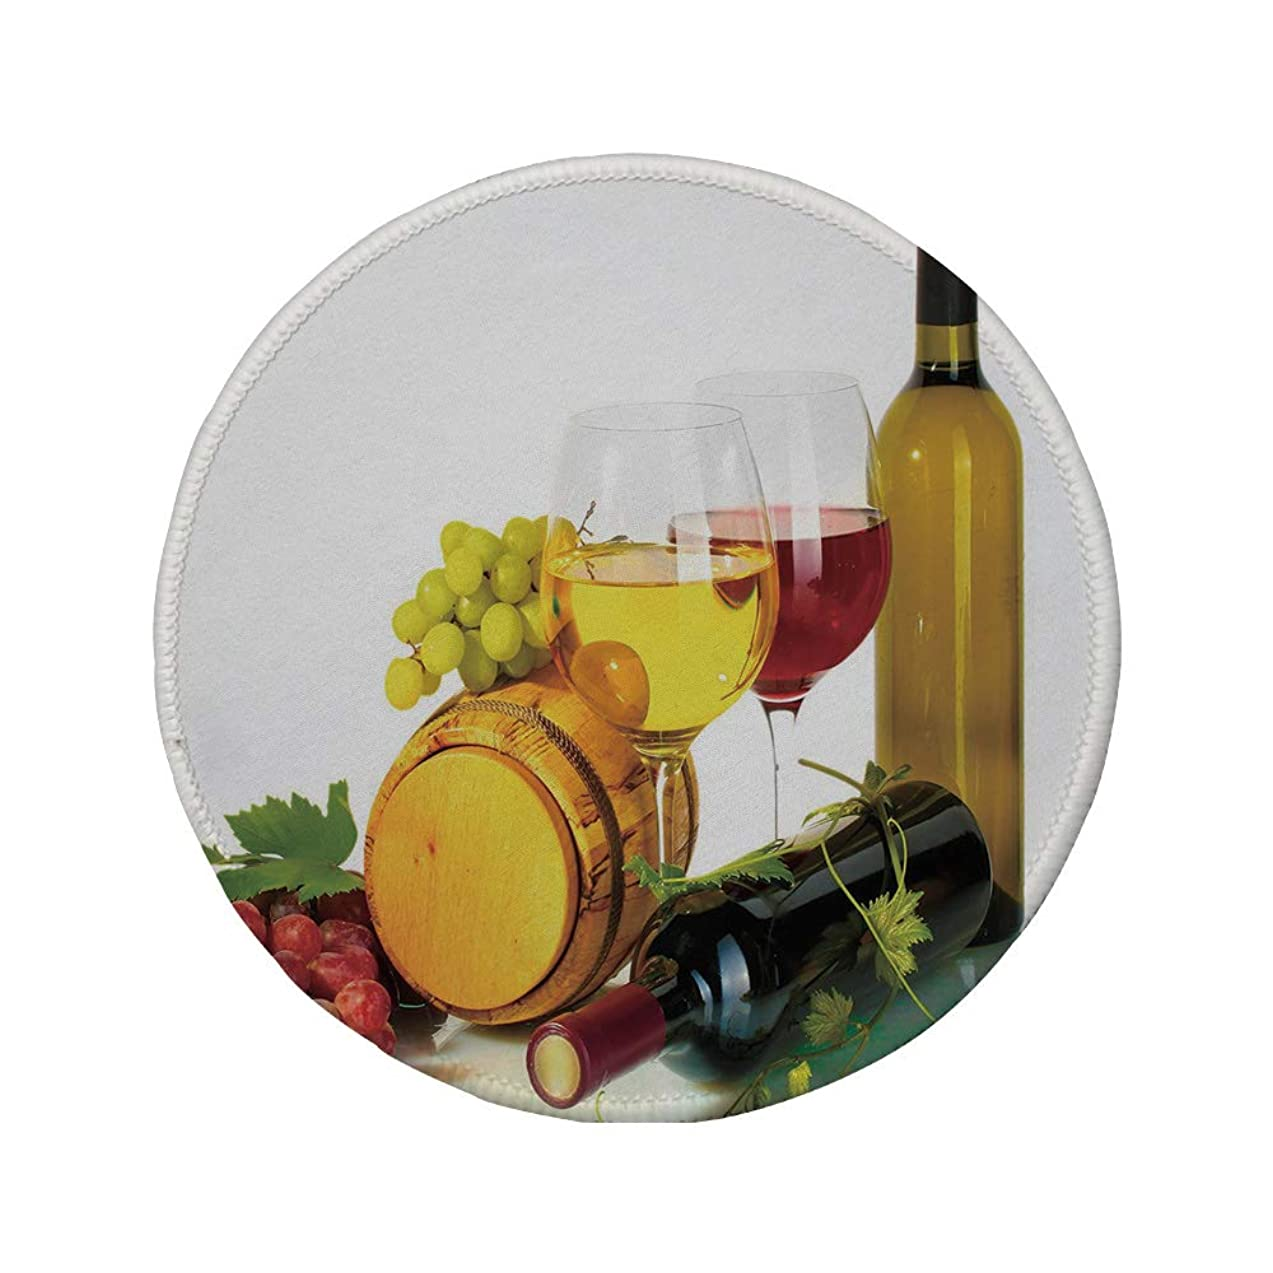 Non-Slip Rubber Round Mouse Pad,Wine,Composition with Small Barrel Two Types of Grapes Drinks Beverage Product Decorative,Red Yellow Light Green,11.8